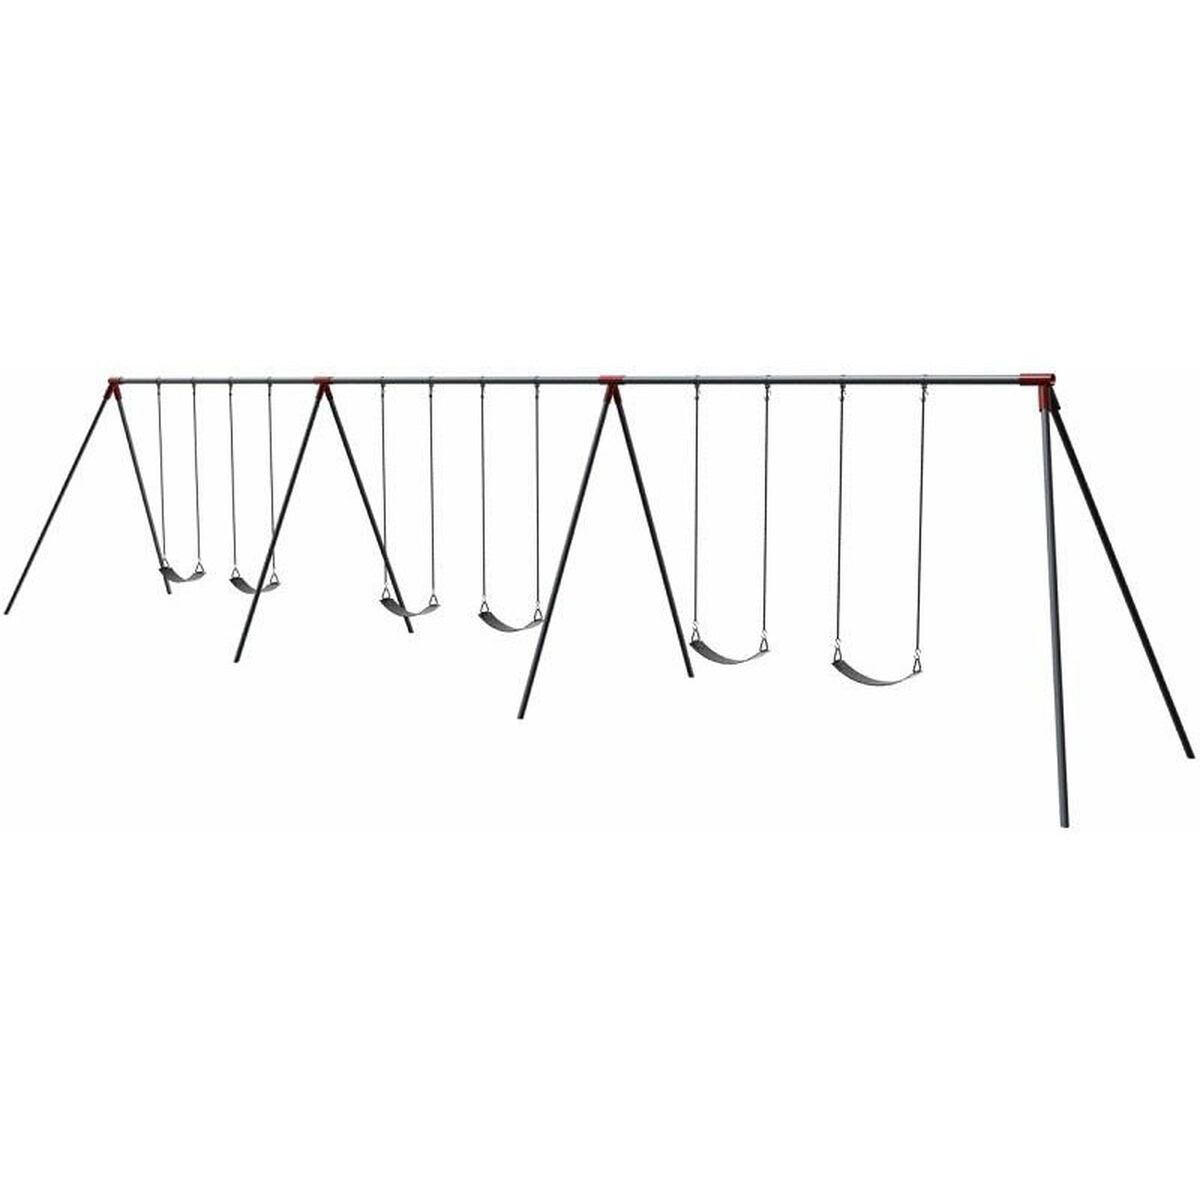 6 Seat Primary Bipod Swing Set 581-618X | SchoolFurniture4Less.com